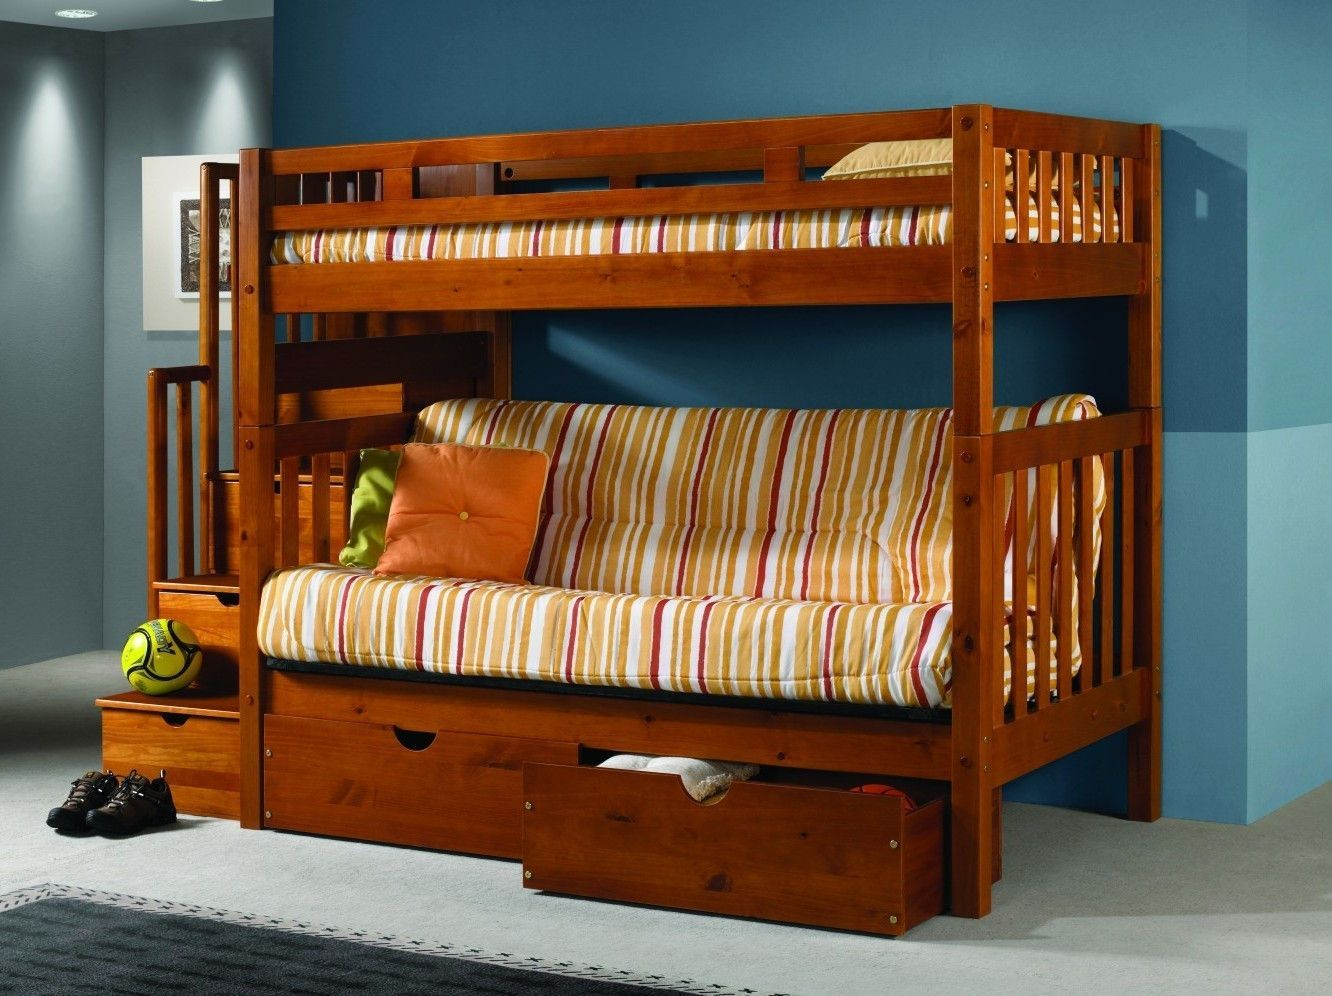 Twin loft bed with stairs and storage  Futon Bunk Bed with Stairs  brick interlocking  Pinterest  Futon